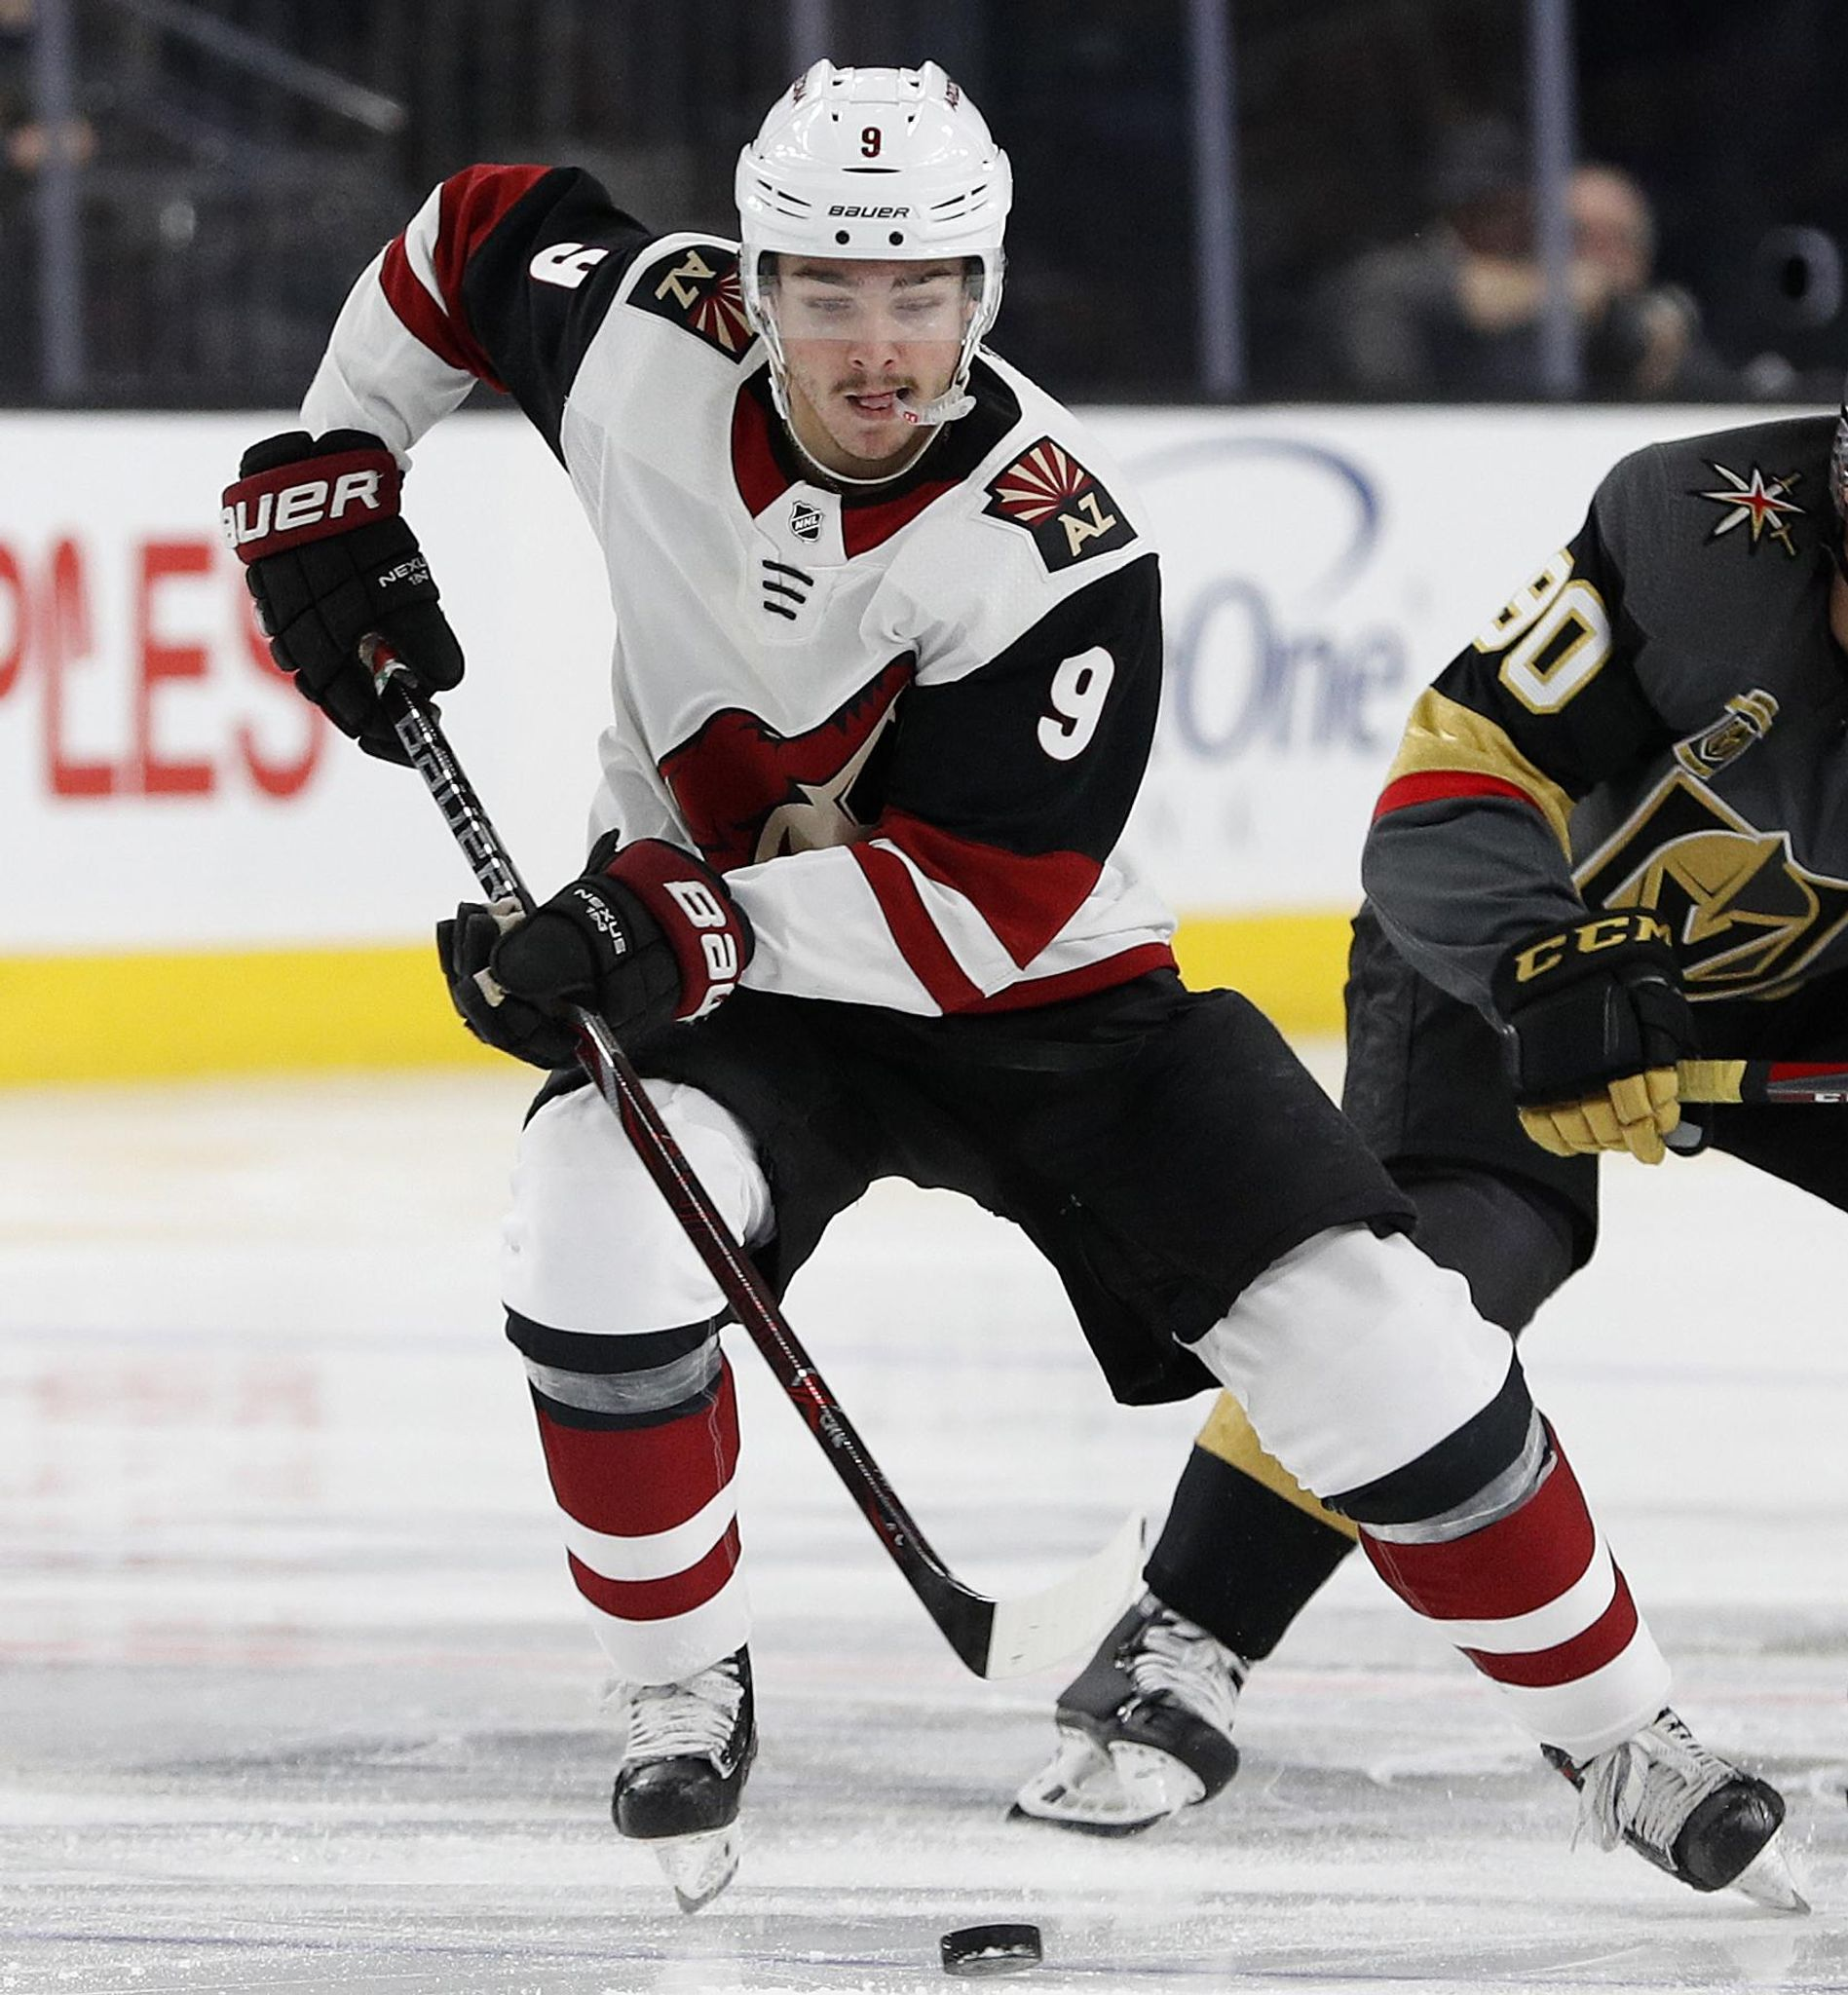 Coyotes_preview_hockey_35545_s1897x2048